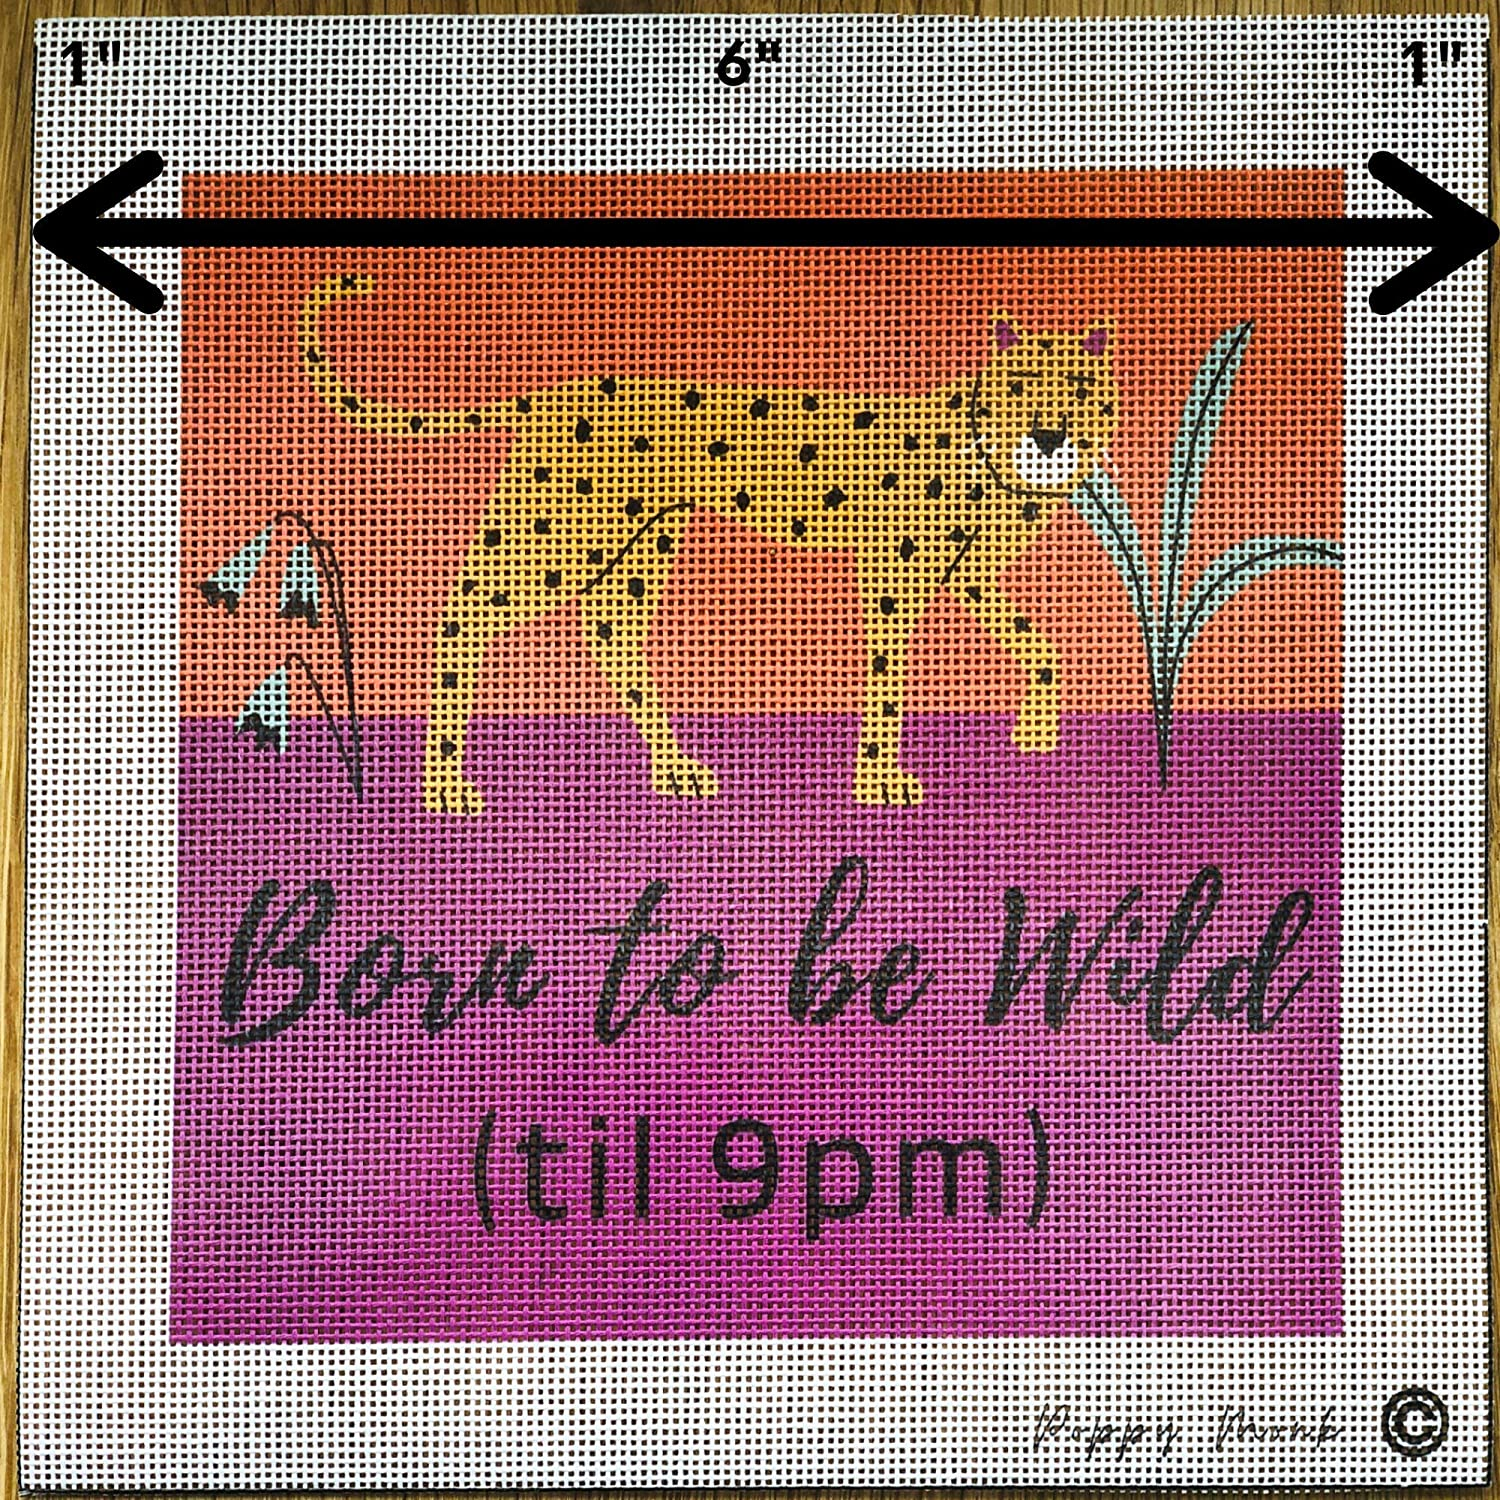 Cheetah Humorous Contemporary Design Modern Colors Needlepoint Printed Born to be Wild Use Embroidery Decorative Stitches or Tent Stitch. Needlework Art Craft 6 x 6 on 18 Holes per inch Canvas